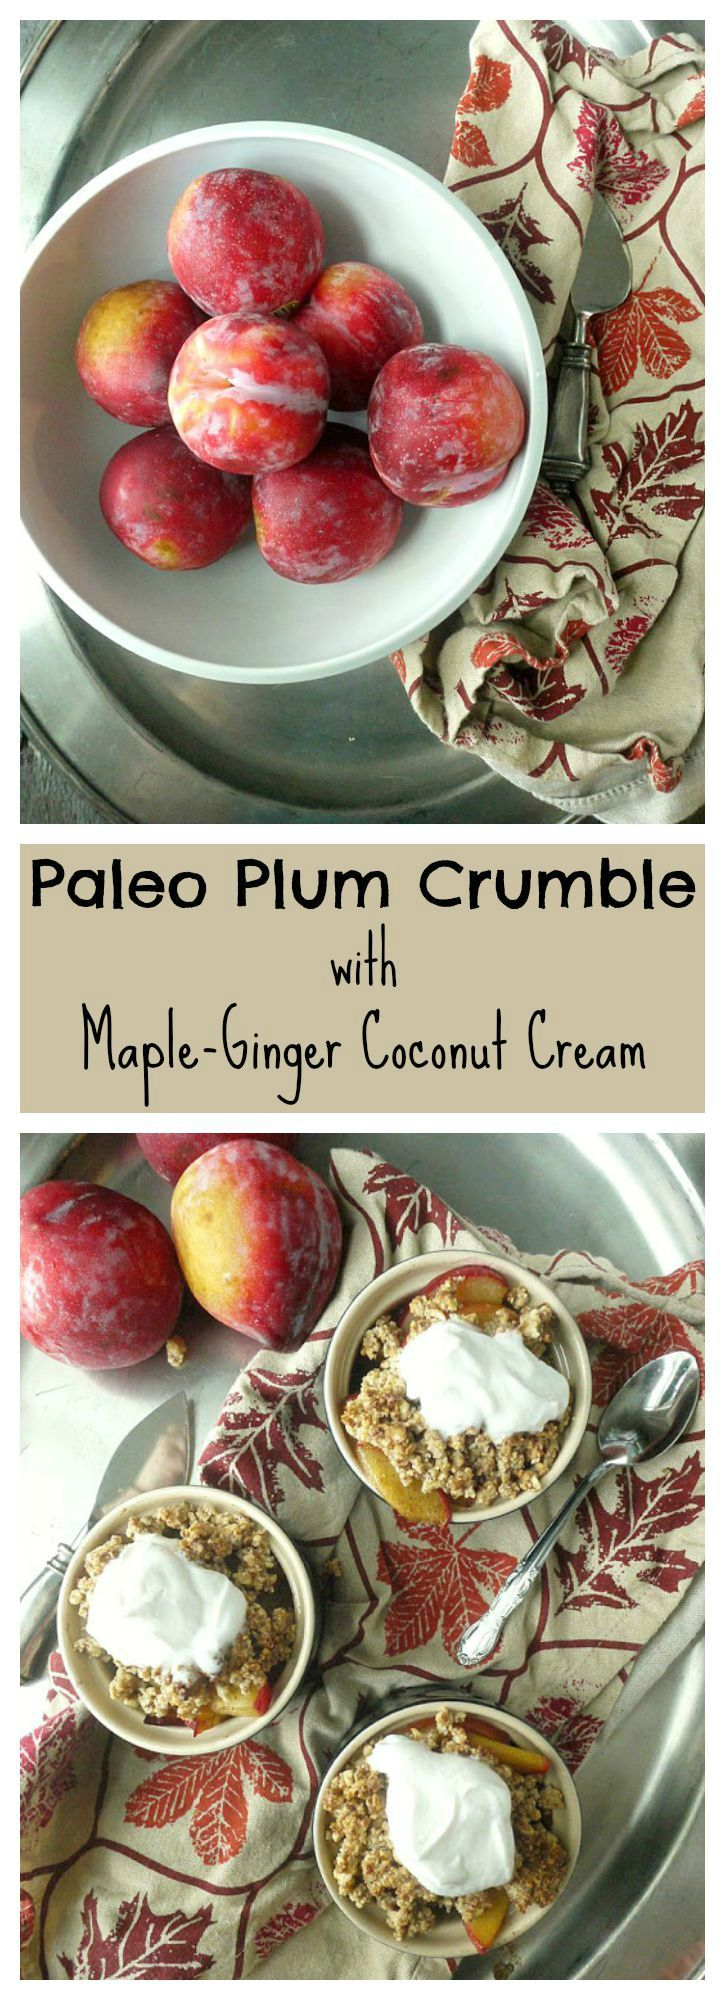 This delectable dessert is #paleo and #vegan. And it's a great way to ...